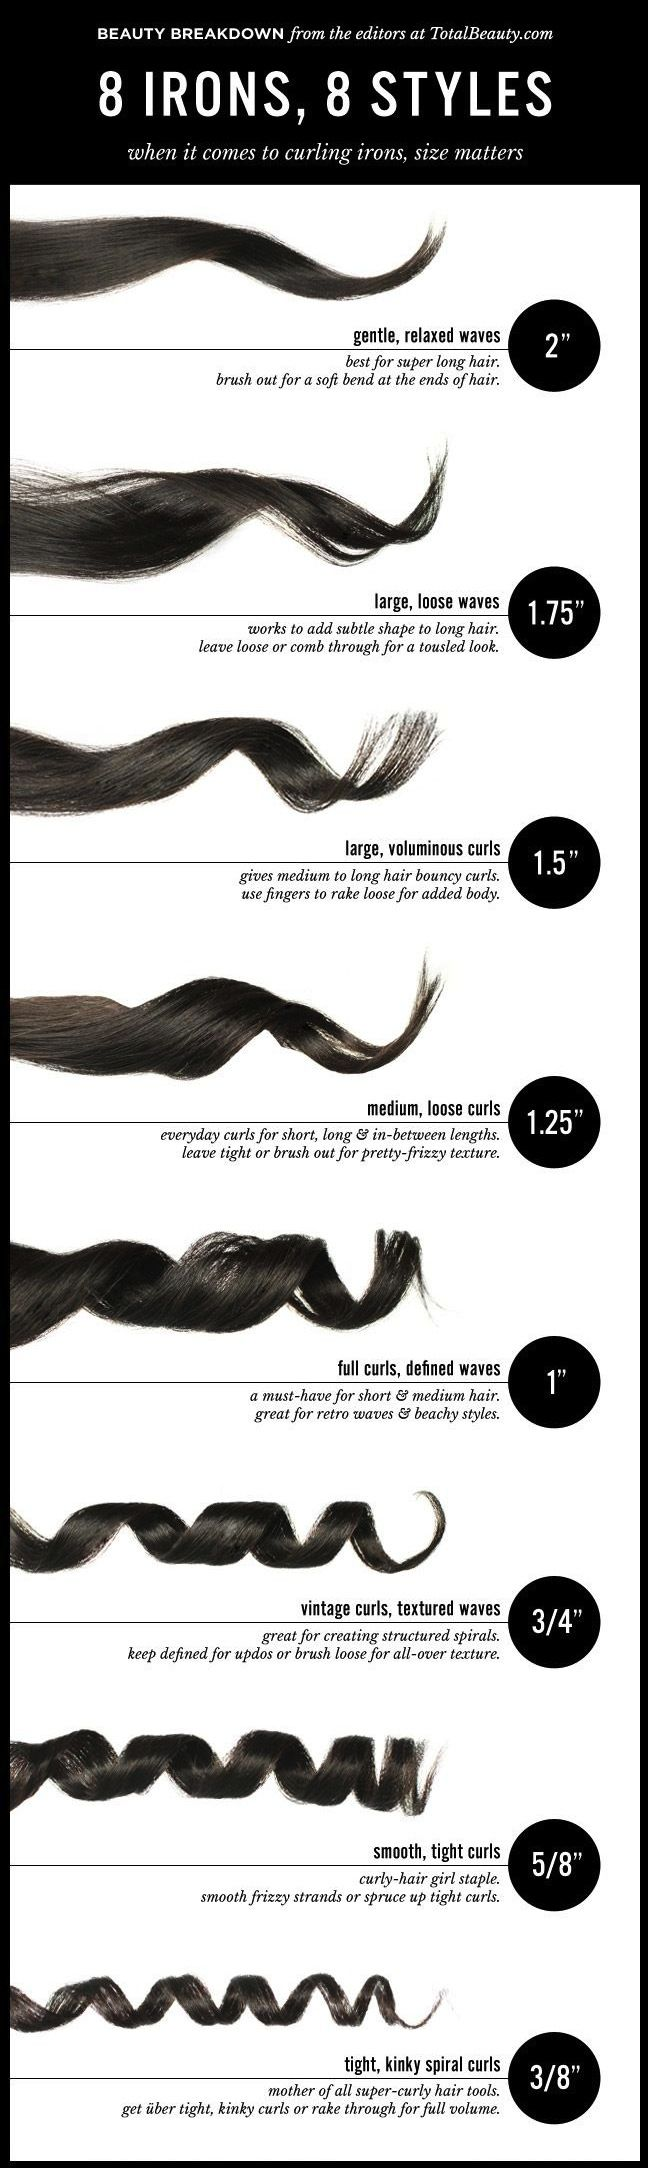 How to Pick Your Curling Iron. *I don't currently use any heat on my hair but this is still extremely helpful information. For example I can transfer the size information to perm, curl former or flexirods when doing a cool set style. <3